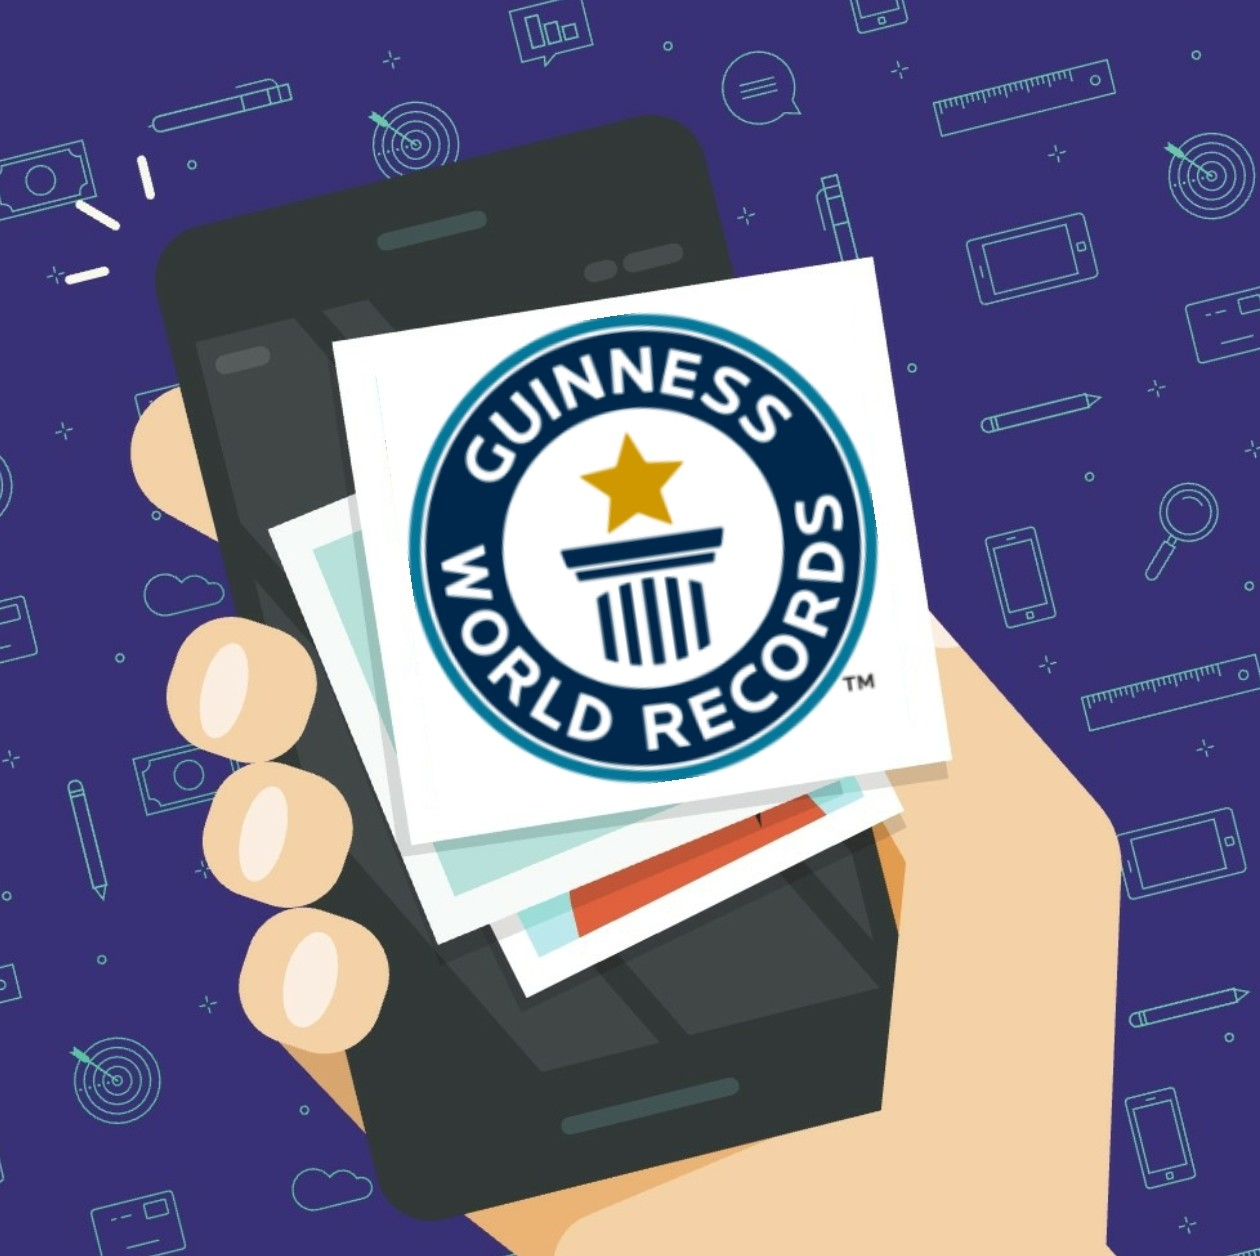 Tautachrome (OTC: TTCM) Announces First Annual Nationwide Augmented Reality Scavenger Hunt and GUINNESS WORLD RECORDS(TM) Title Attempt